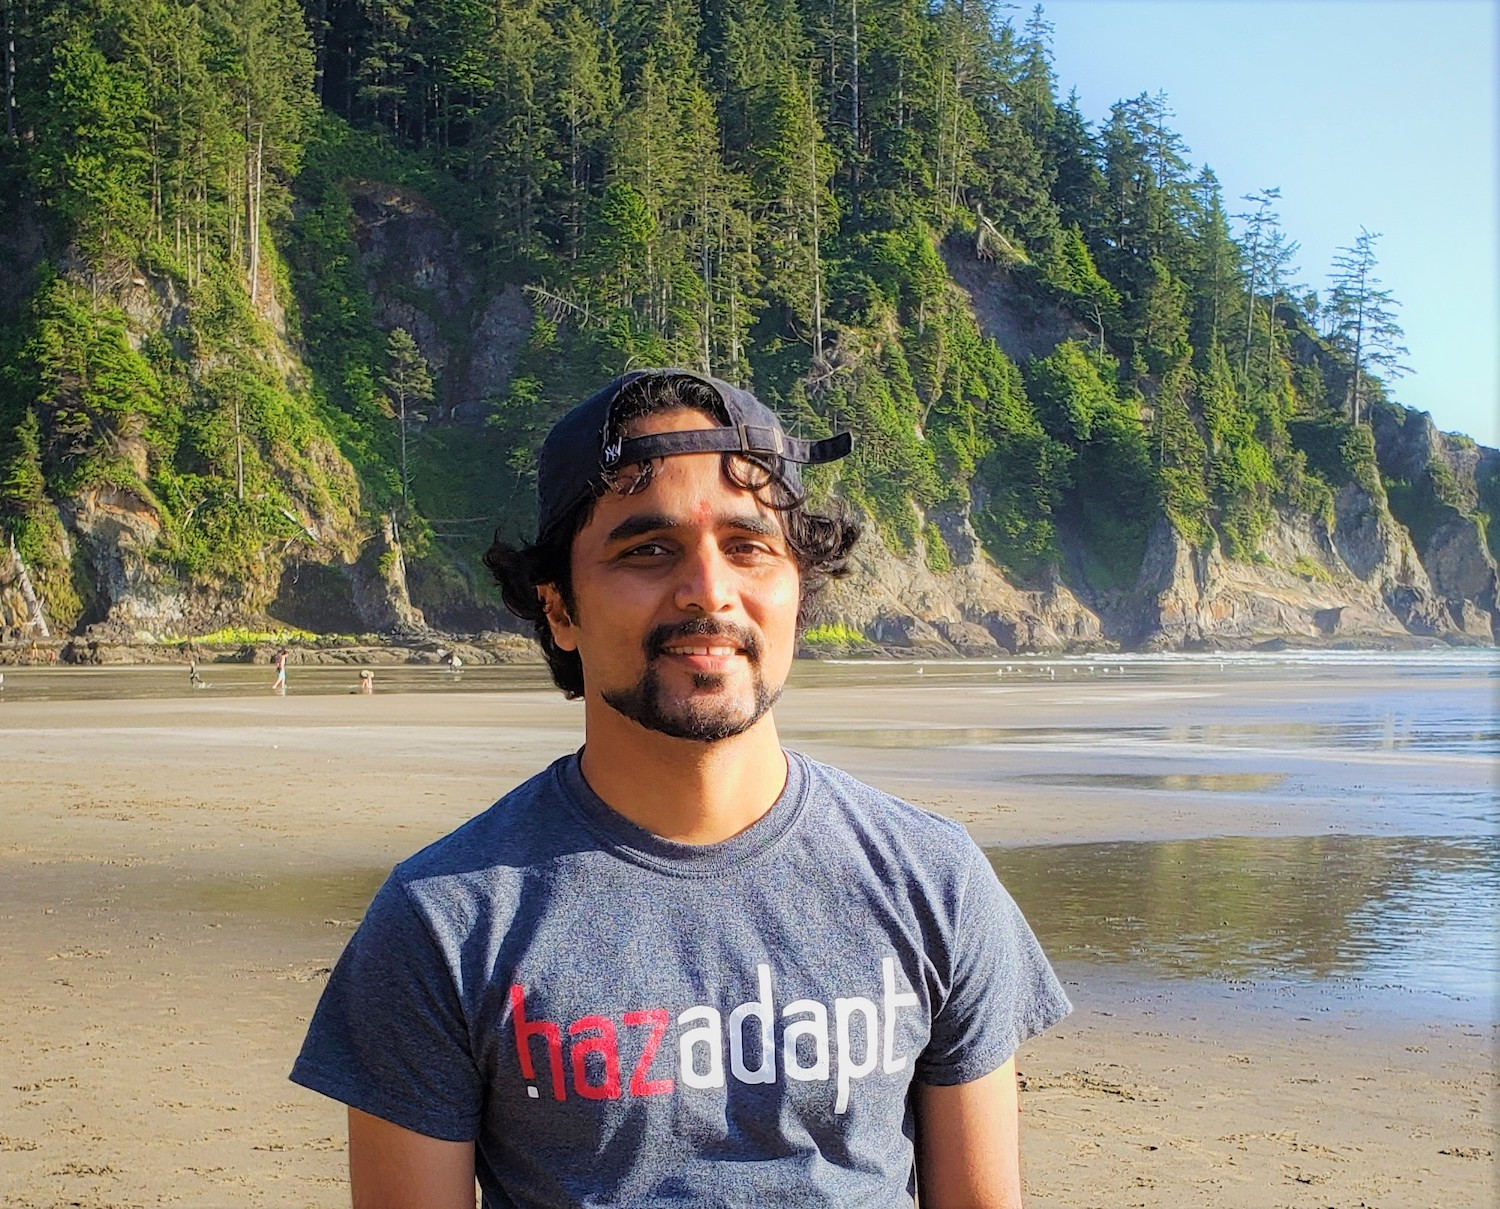 HazAdapt's co-founder and chief software engineer Uday.